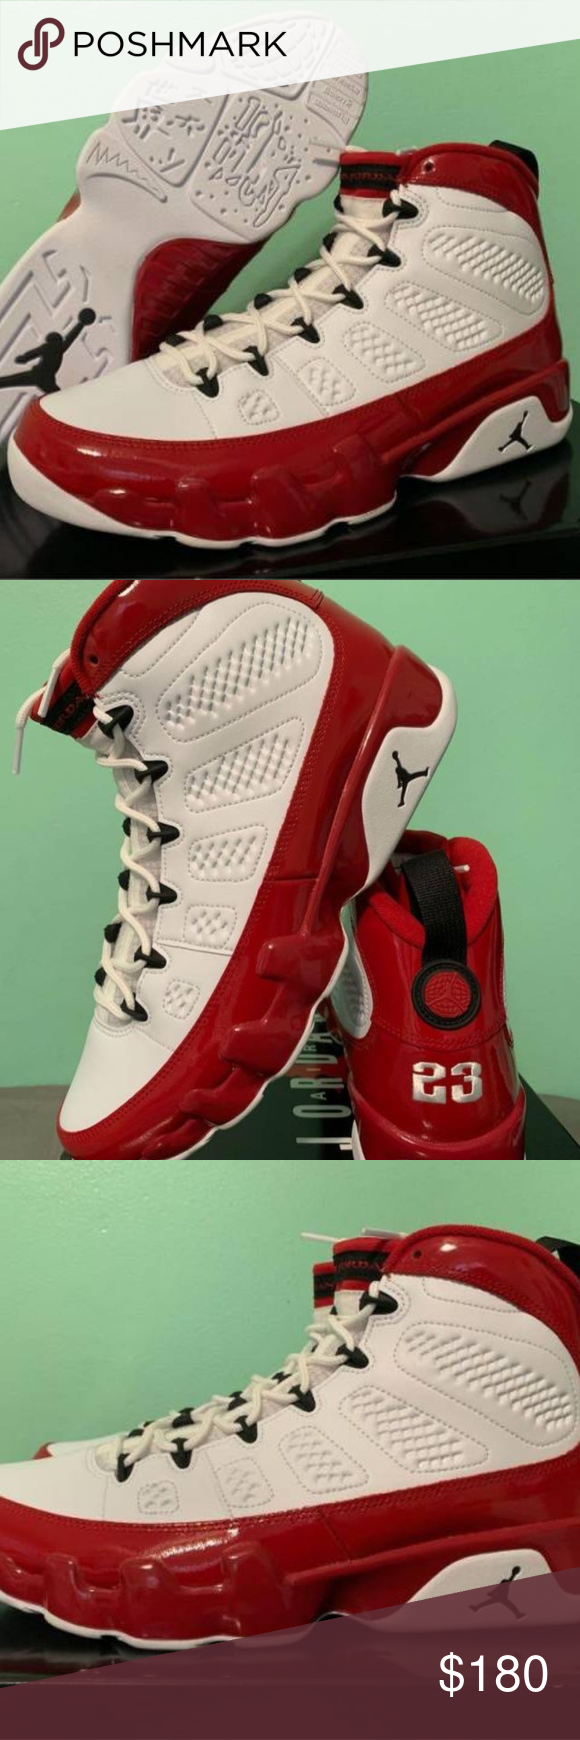 gym red 9s